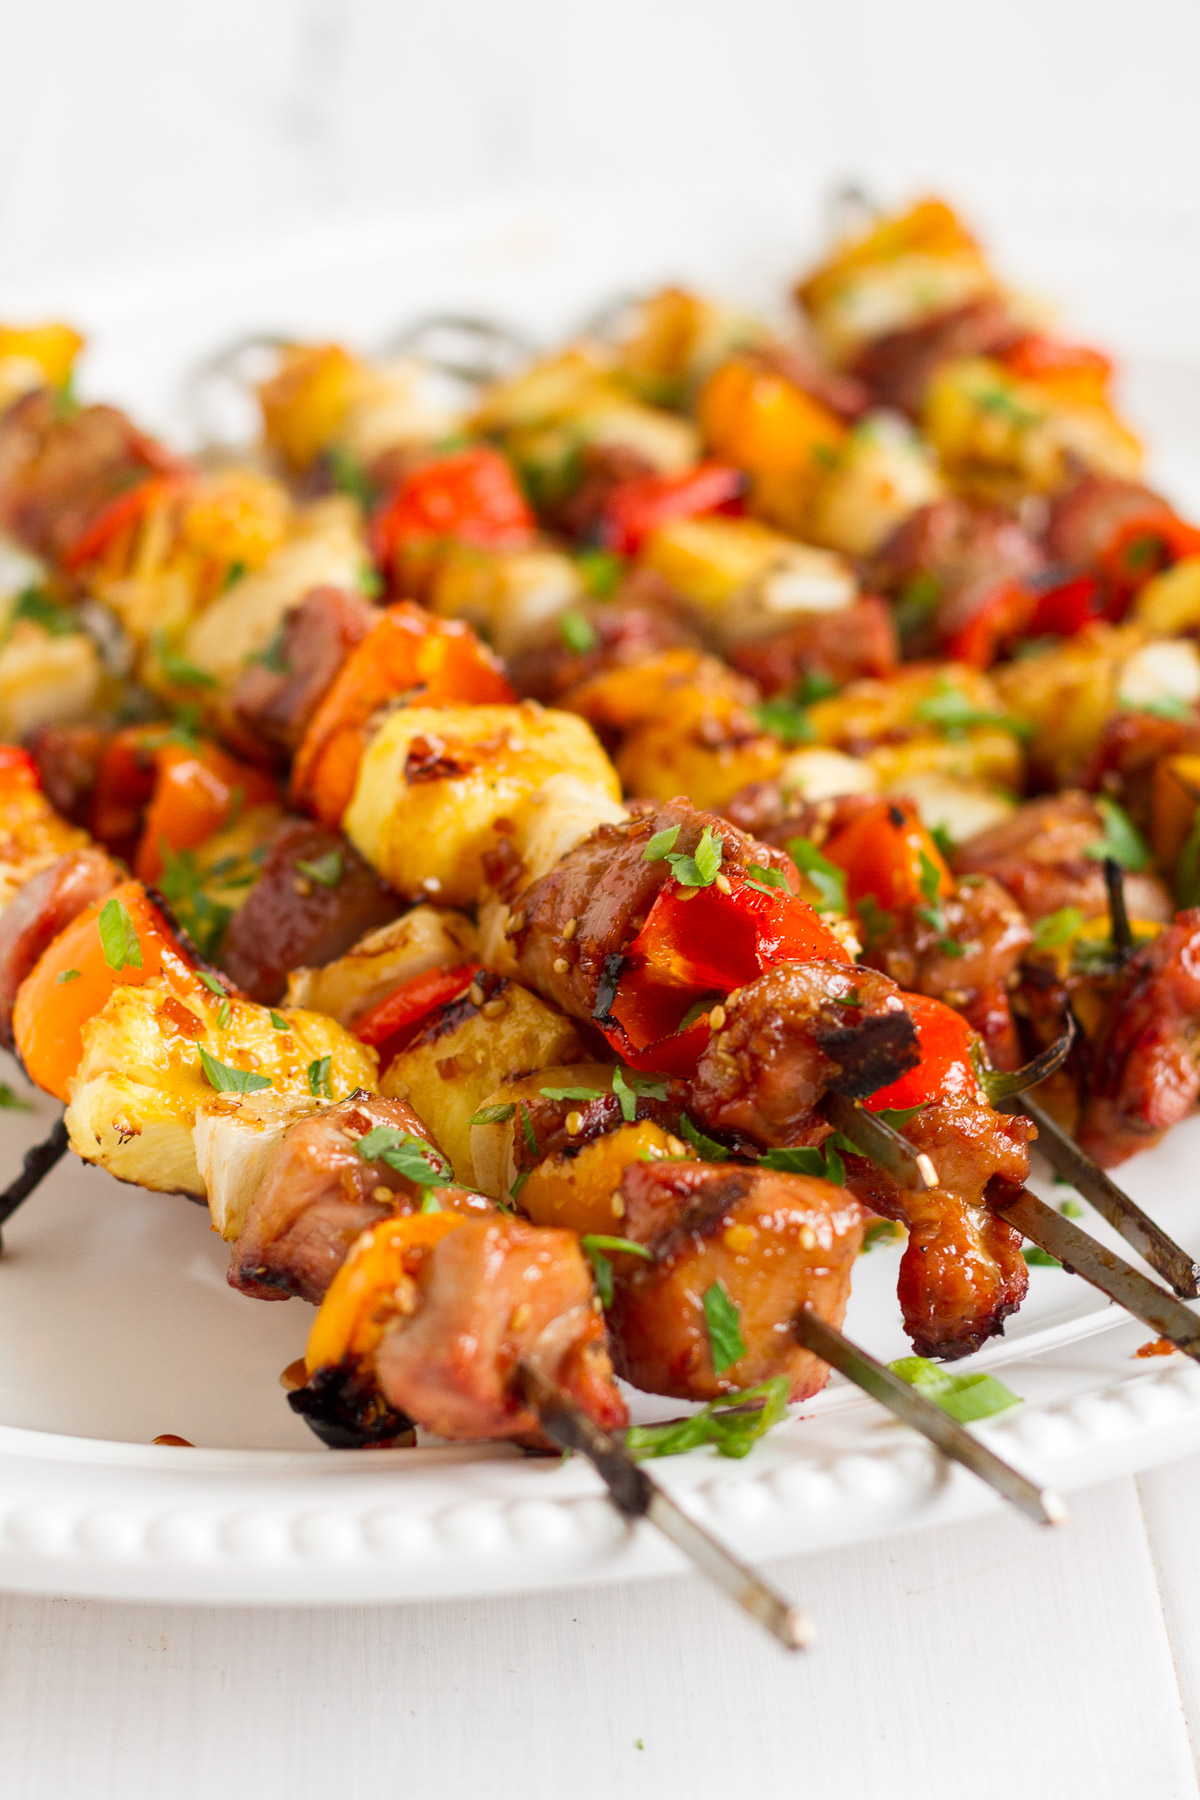 Tropical Teriyaki Skewers